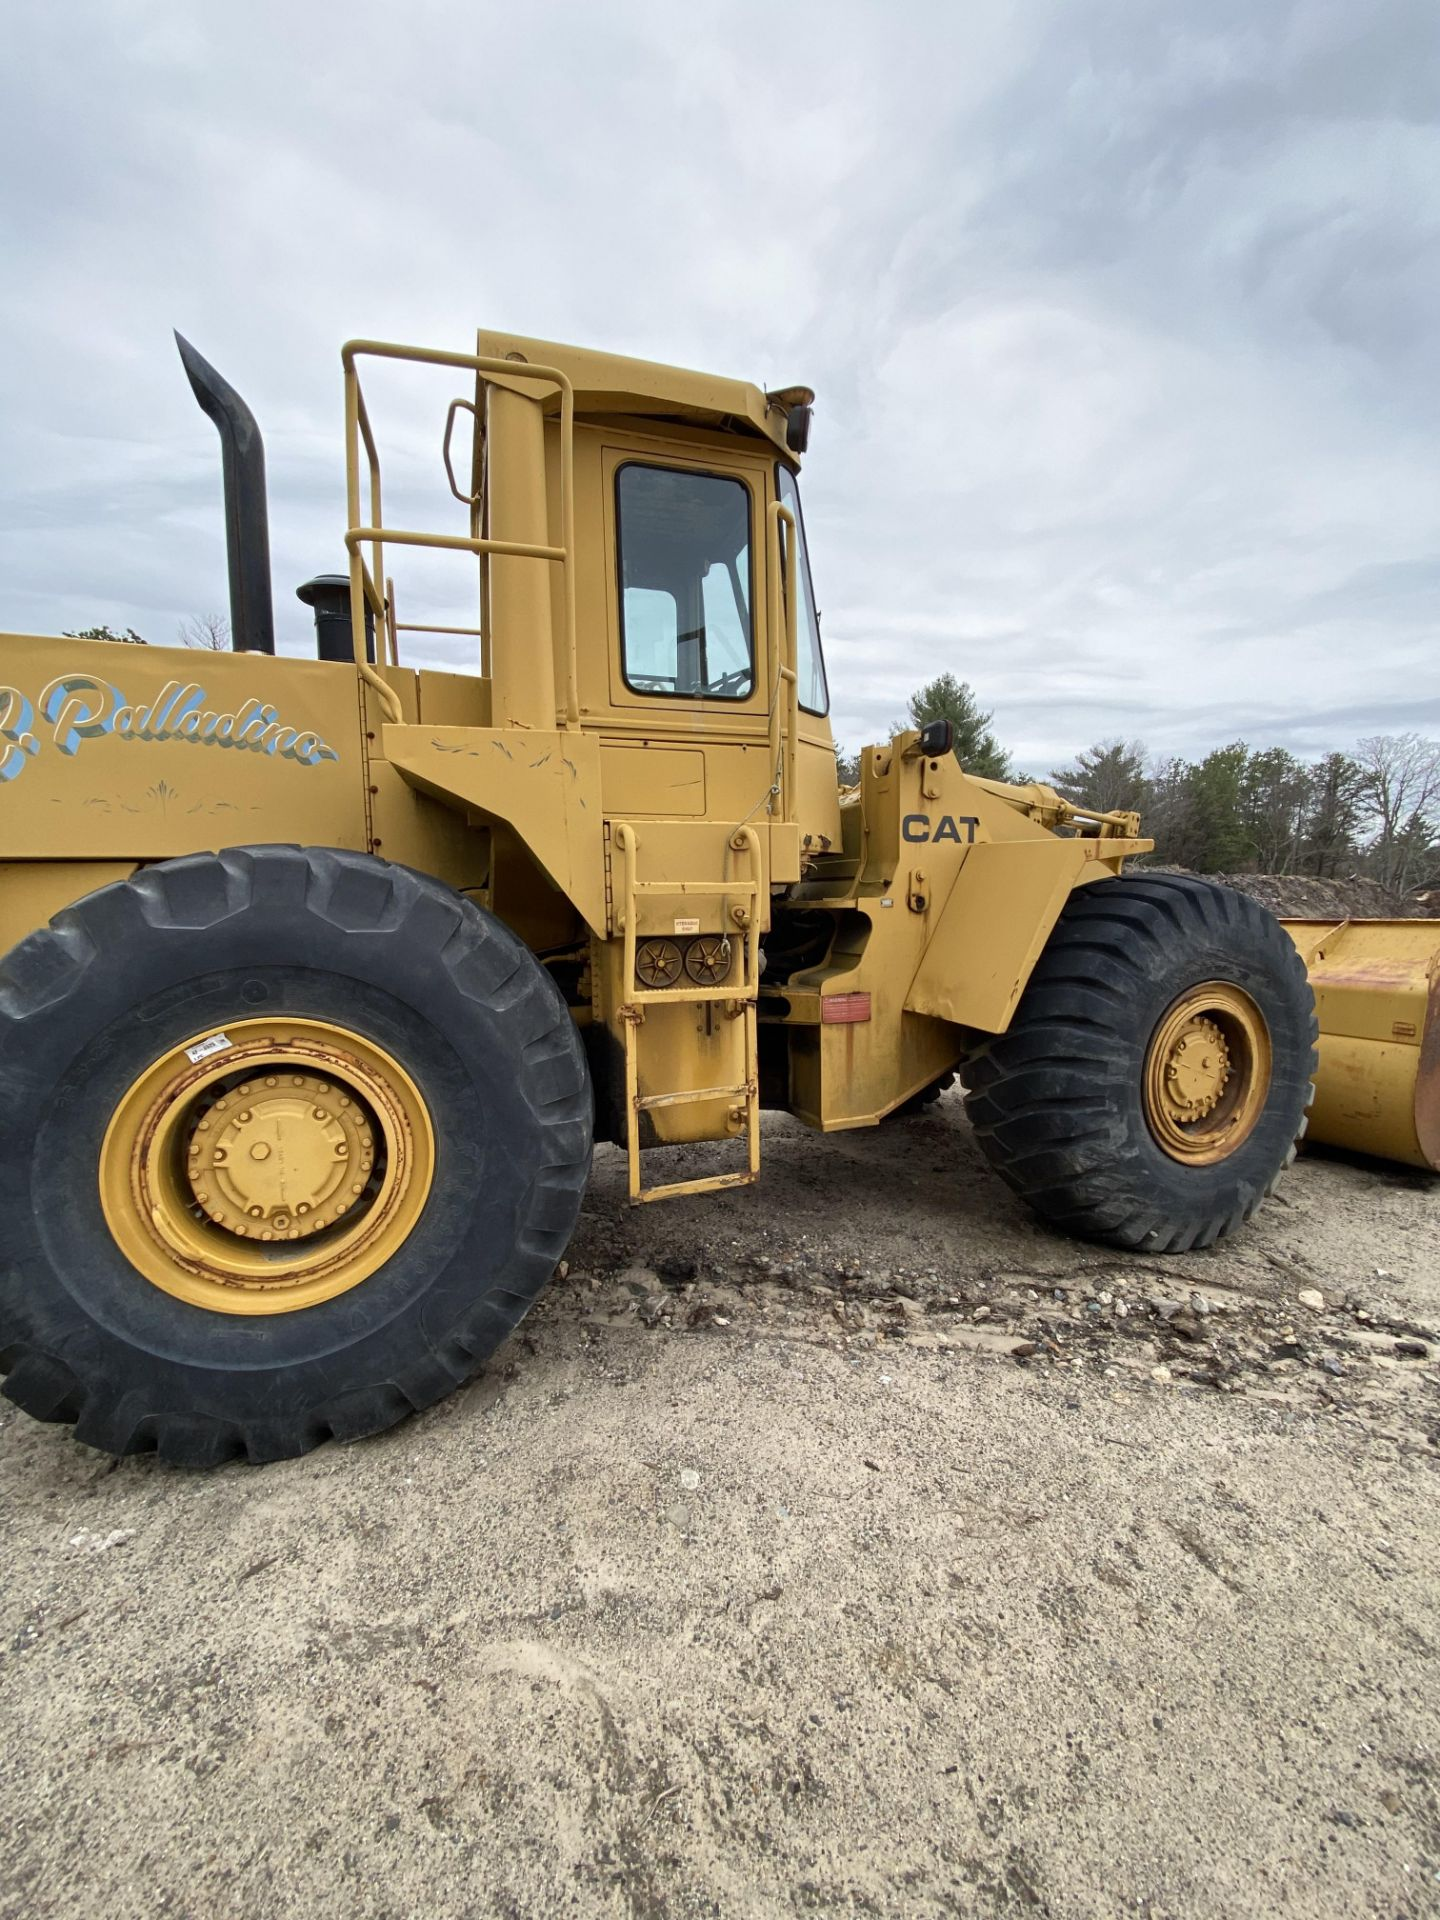 1980 Caterpillar 966D Wheel Loader s/n 99Y02108, Meter Reads 4,664 Hours, Have Title - Image 15 of 23